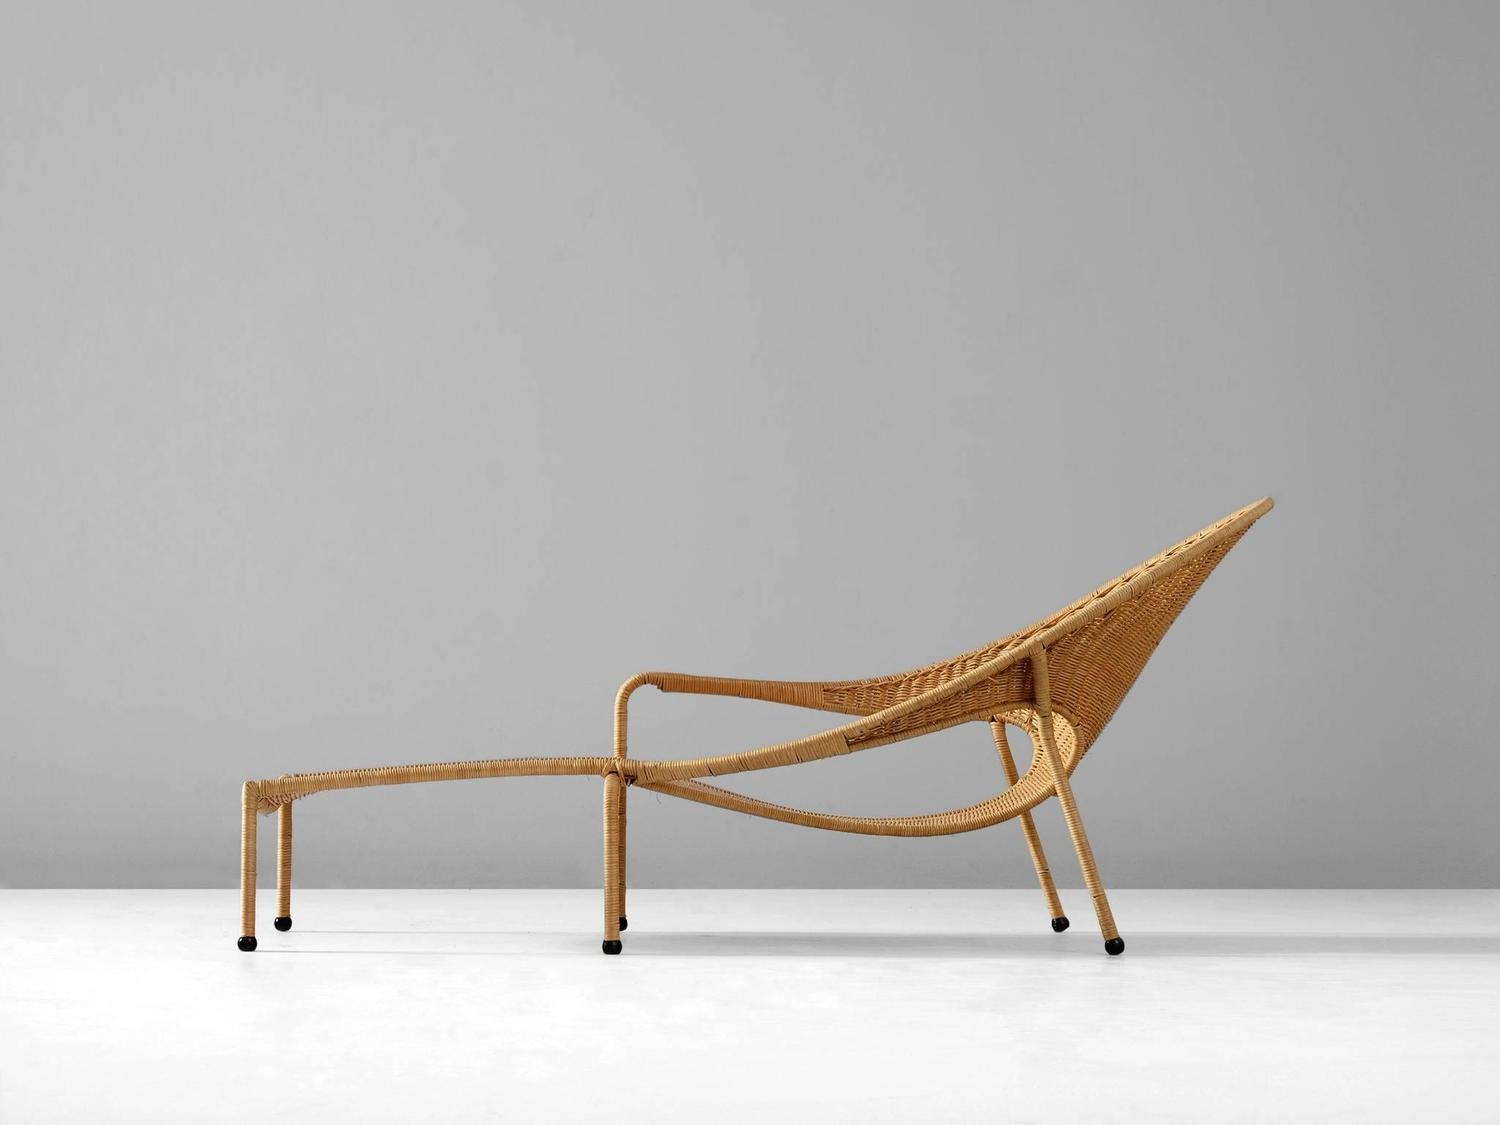 Francis mair wicker chaise longue for sale at 1stdibs for Chaise longue rattan